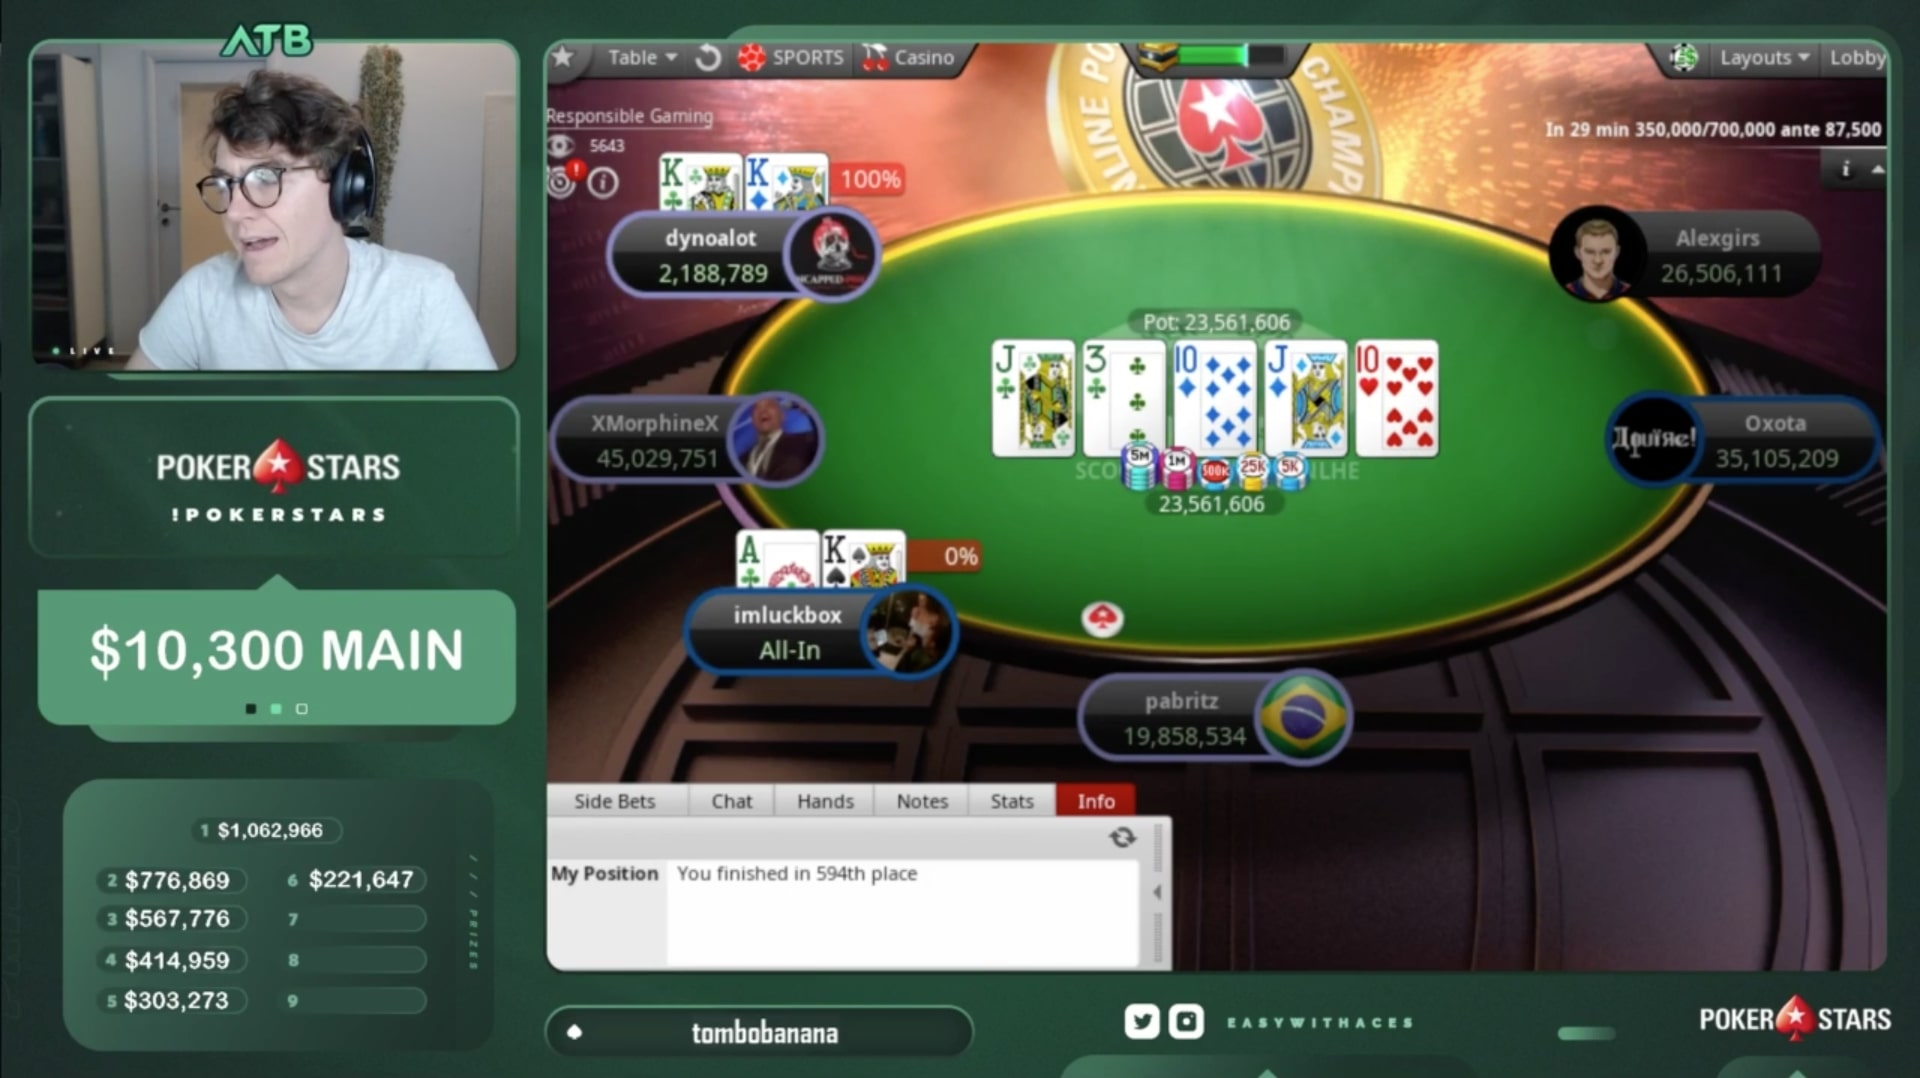 Белорус Александр «alexgirs» Гирс выиграл SCOOP ME на PokerStars и получил $920,595 5